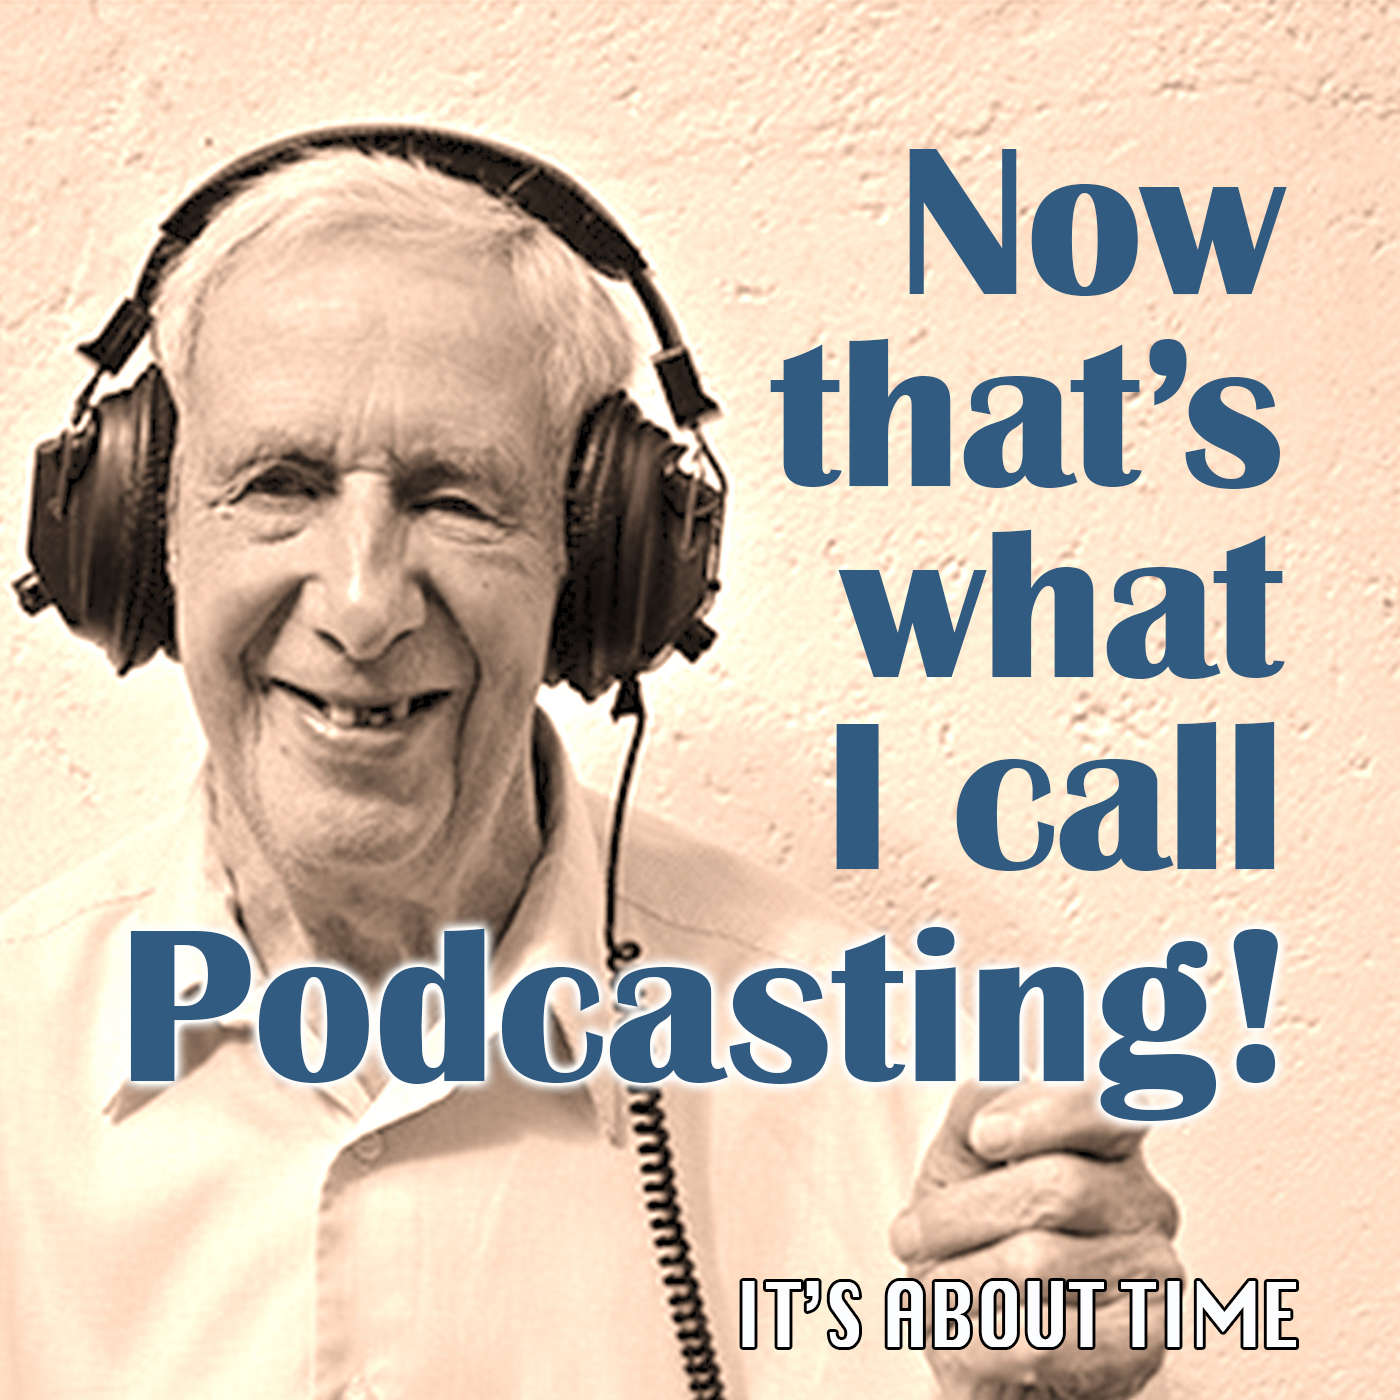 S02E07 - Now That's What I Call Podcasting